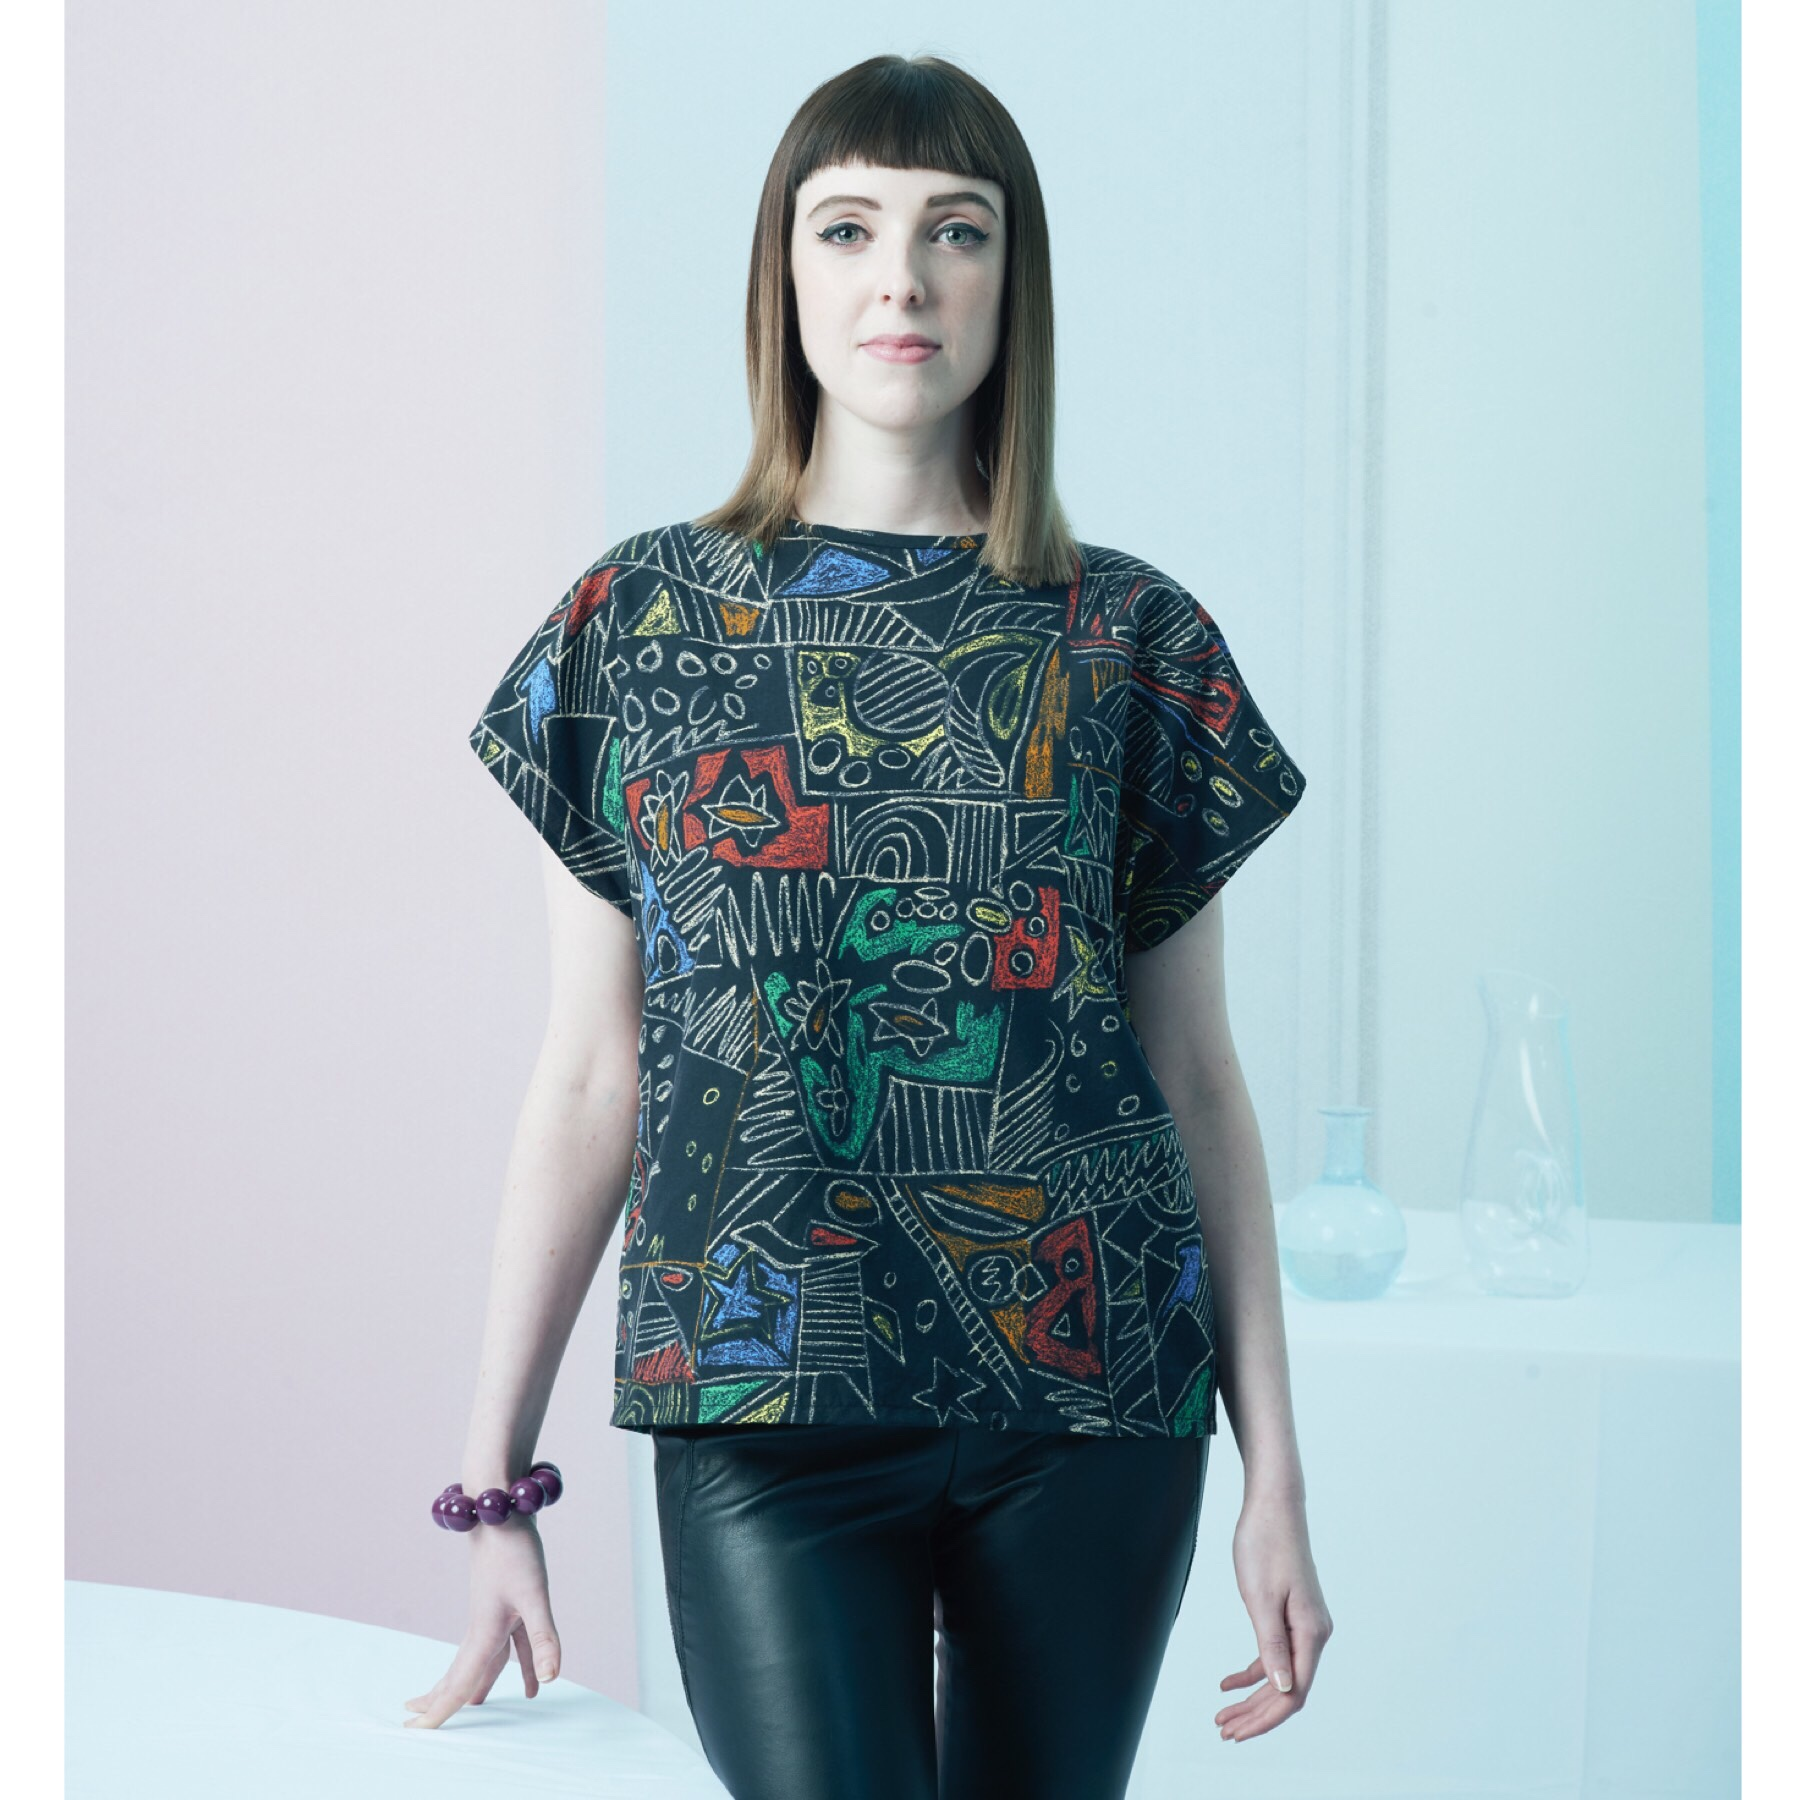 BAFTA breakthrough Brit Lucy Bevan in the Graffiti Neat Top with cap sleeves